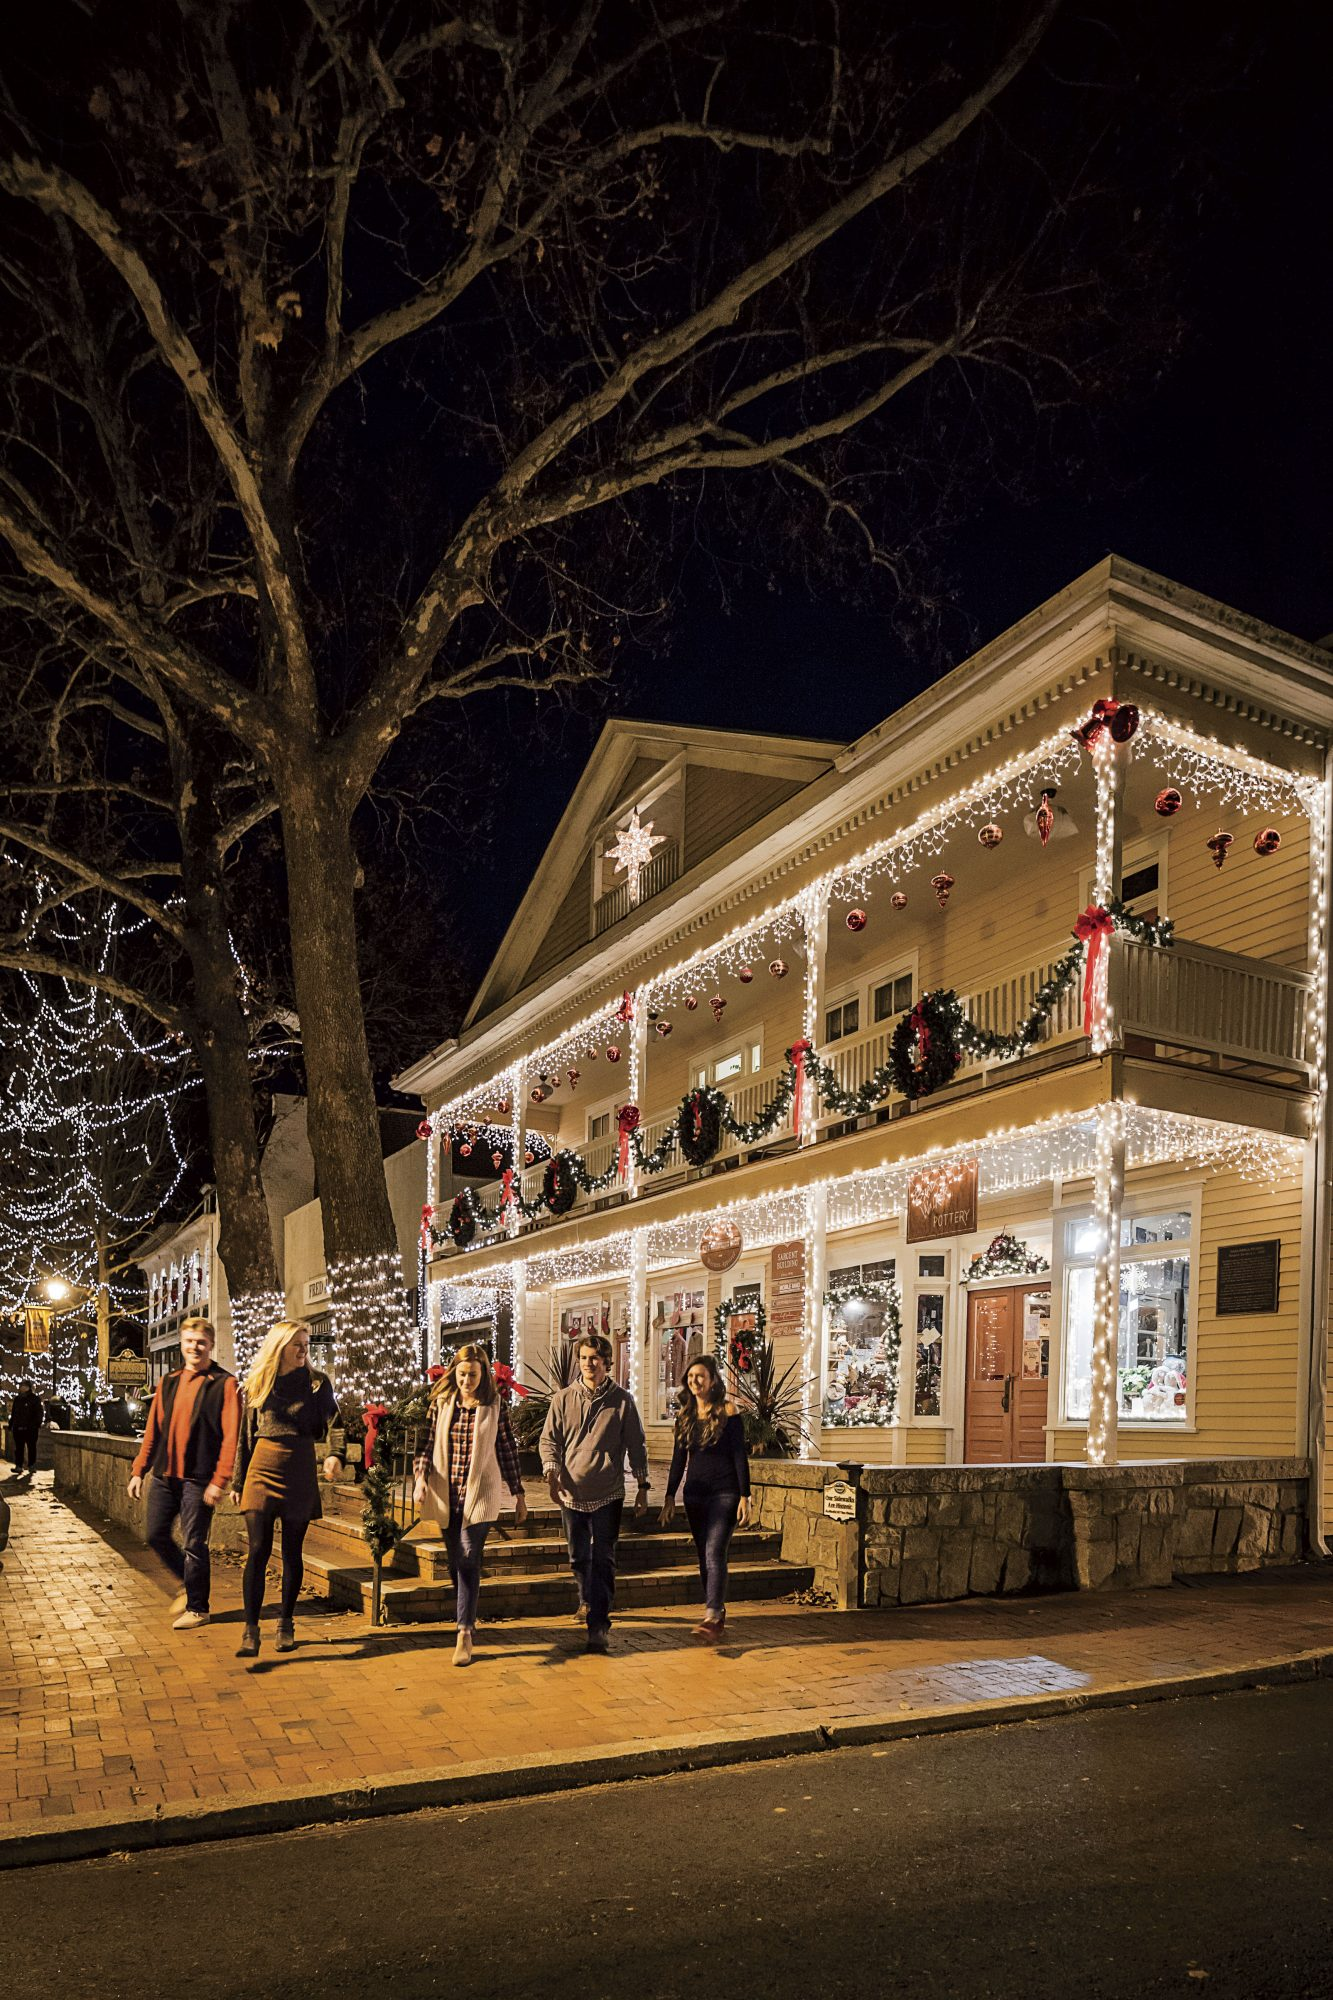 Downtown Streets Decorated for Christmas in Dahlonega, GA